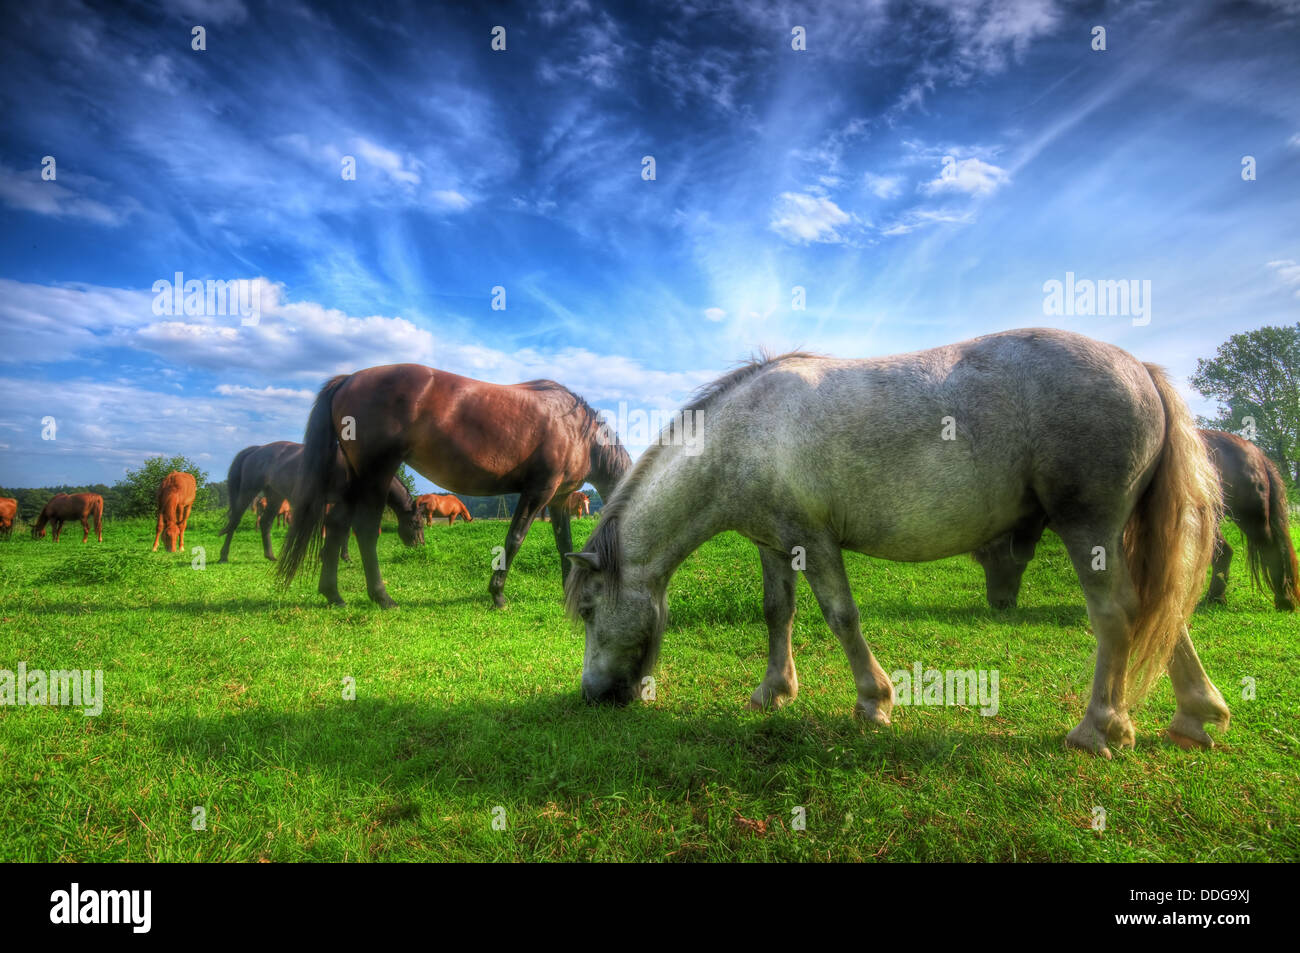 Beautiful horses in a field. Stock Photo